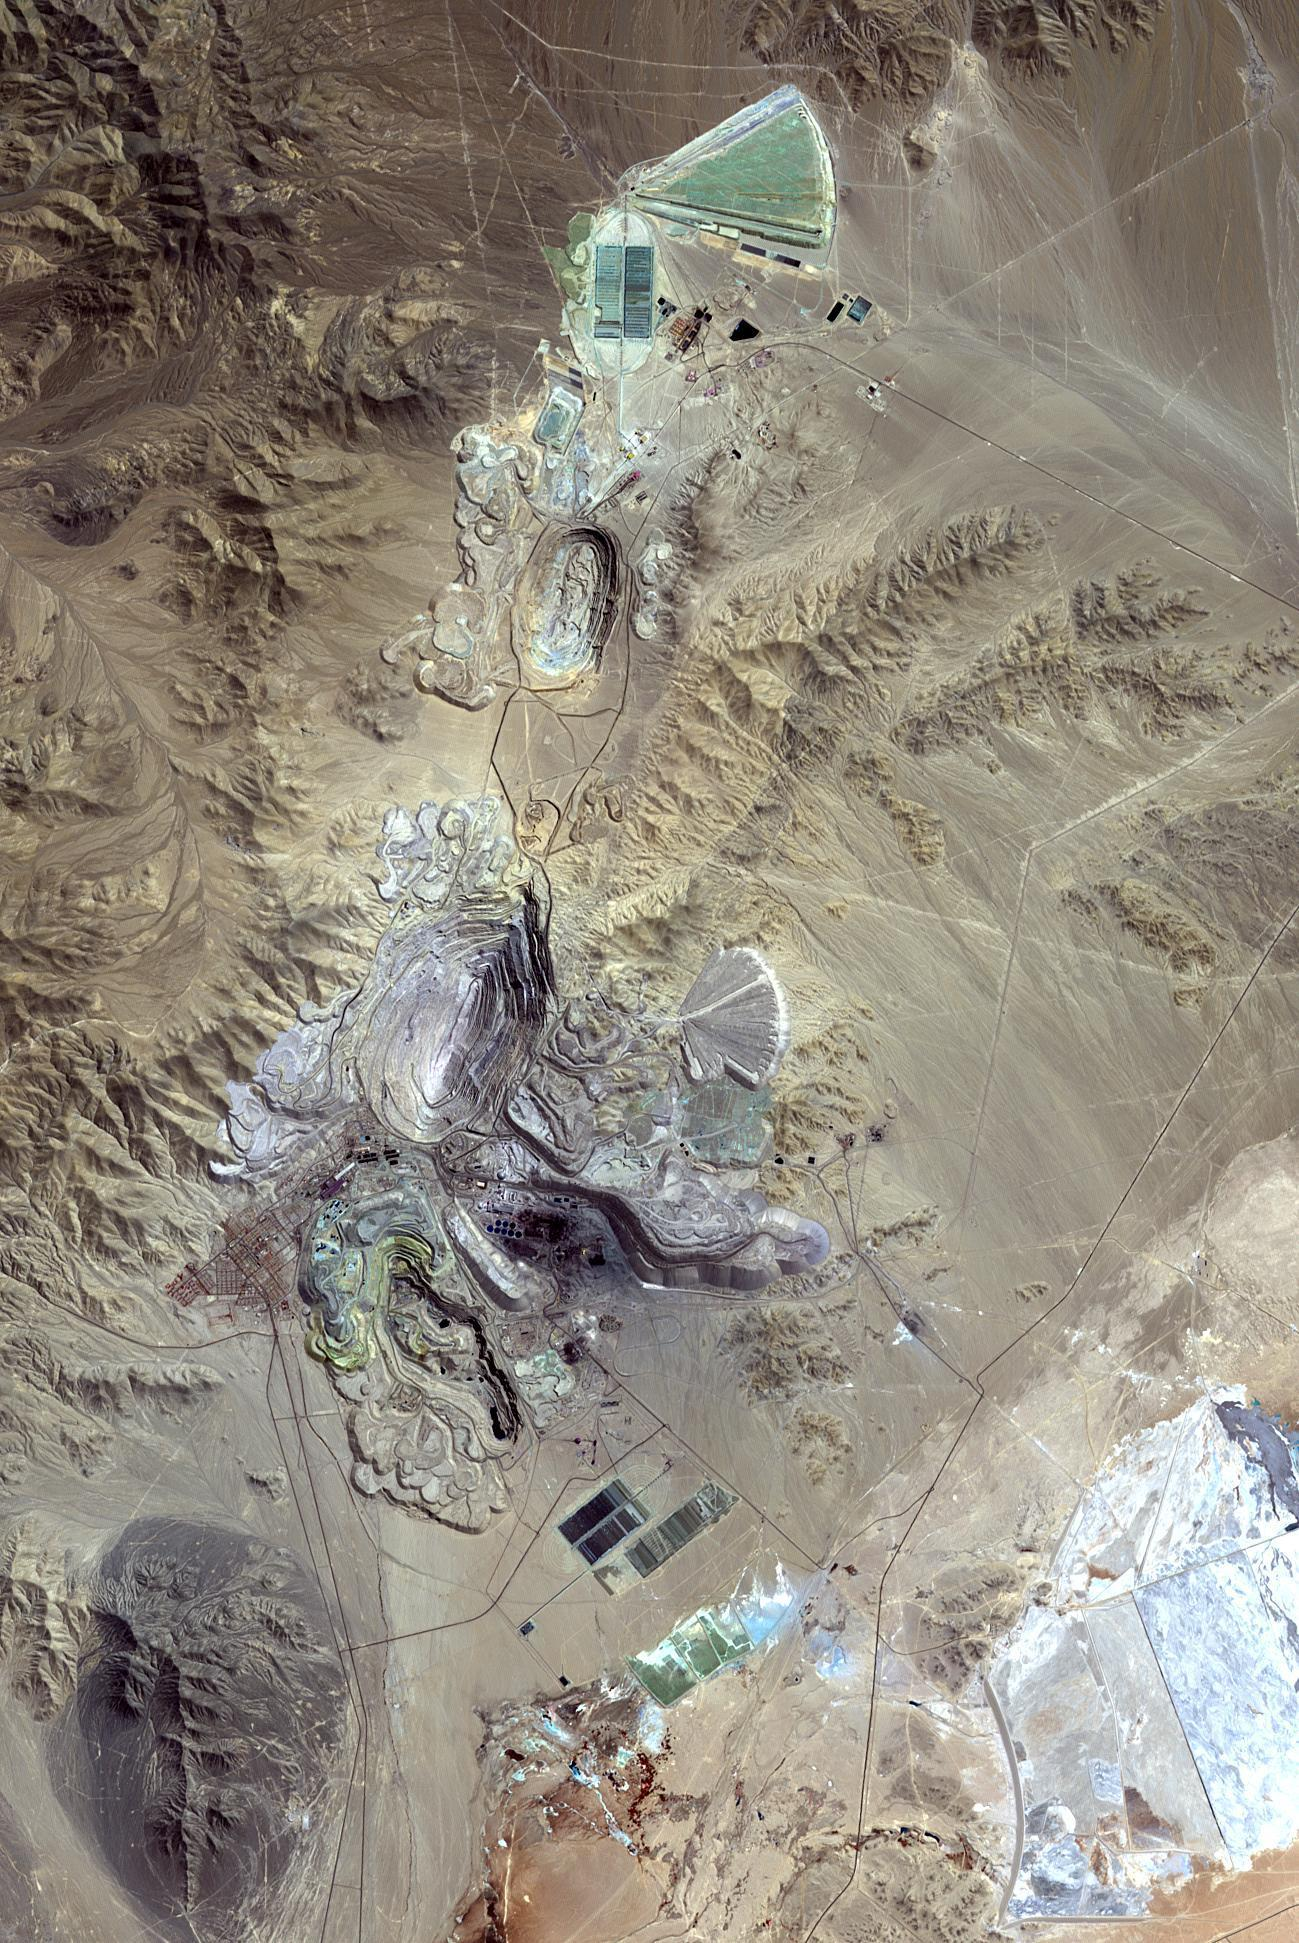 PICTURE SHOWS: Chuquicamata, in Chile's Atacama Desert, is the largest open pit copper mine in the world, by excavated volume. The image was acquired September 2, 2007, covers an area of 19.5 by 29.3 km.  ...   Prepare to have your mind blown - NASA has collected together a treasure trove of more than 140,000 images, videos and audio files.  The stunning collection consolidates imagery spread across more than 60 collections into one searchable location, called the NASA Image and Video Library website.  Cover Images have chosen a gallery of the most popular images currently on the website, which include the first American astronaut to walk in space and a self-portrait of NASA's Curiosity Mars rover.  The portal allows users to search and discover content from across the agency's many missions in aeronautics, astrophysics, Earth science, human spaceflight, and more.  The library is not comprehensive, but rather provides the best of what NASA makes available from a single point of presence on the web. Additionally, it is a living website, where new and archival images, video and audio files continually will be added.  When: 24 Aug 2016